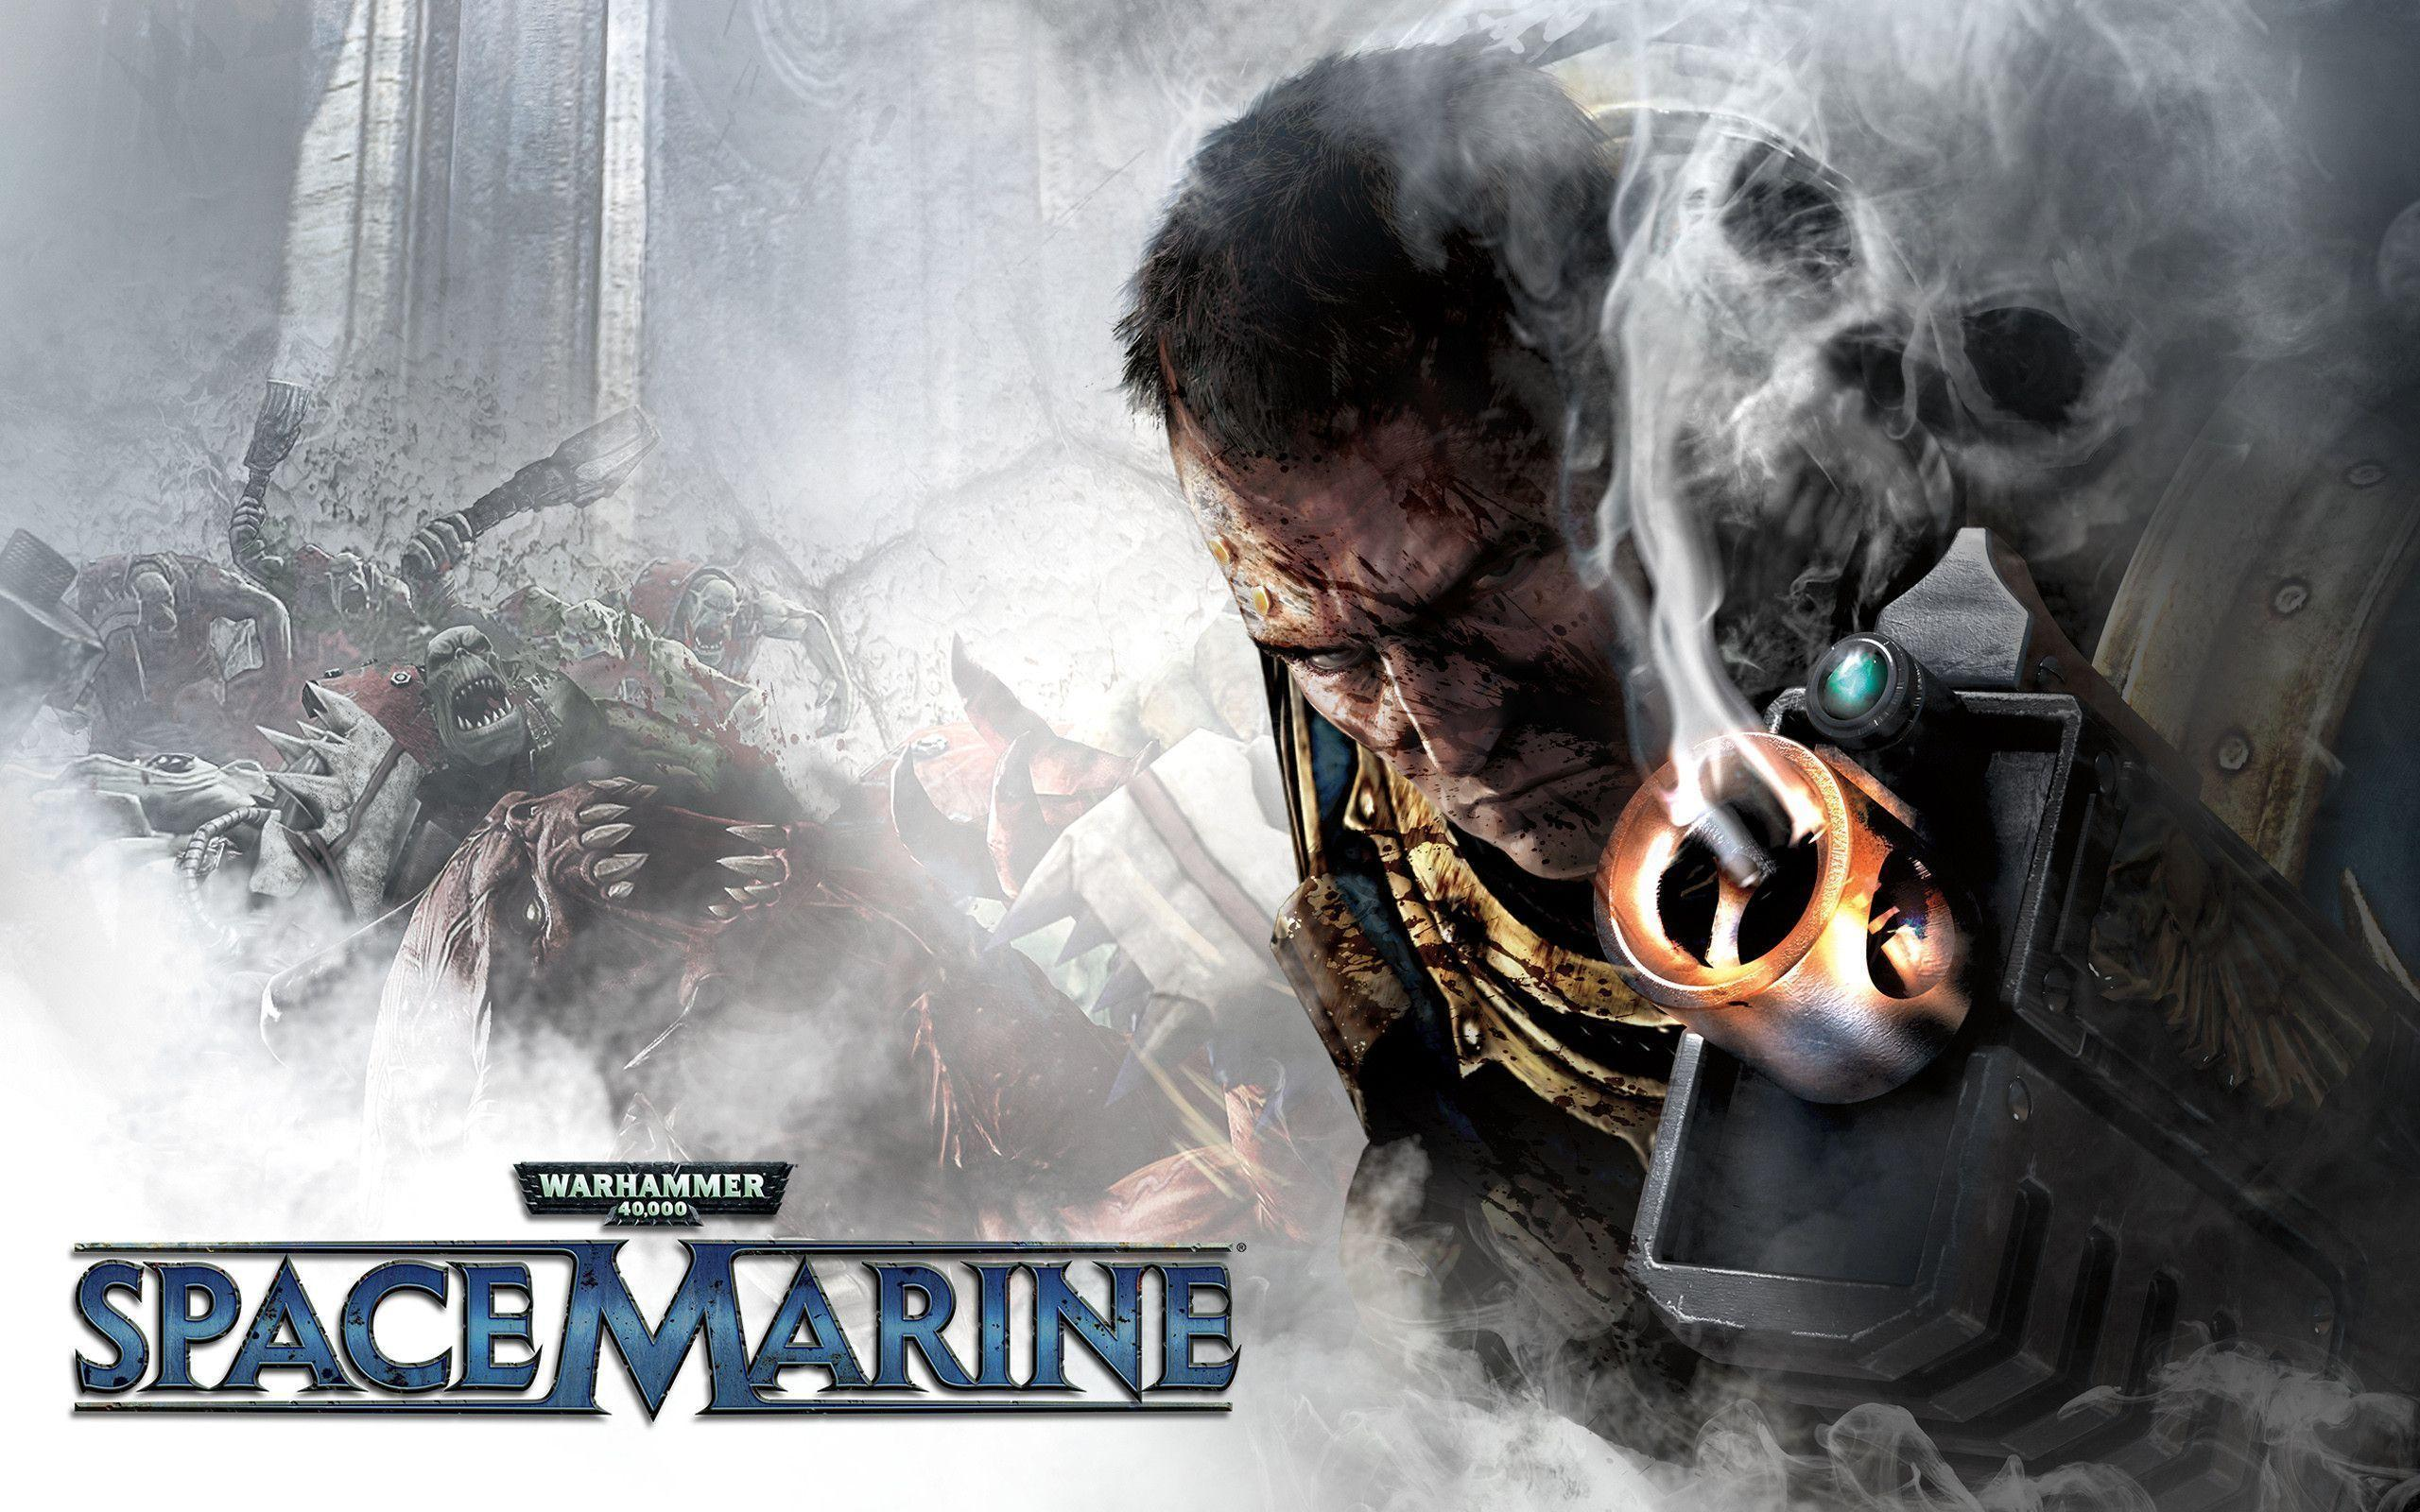 Warhammer Space Marine Exclusive HD Wallpapers #